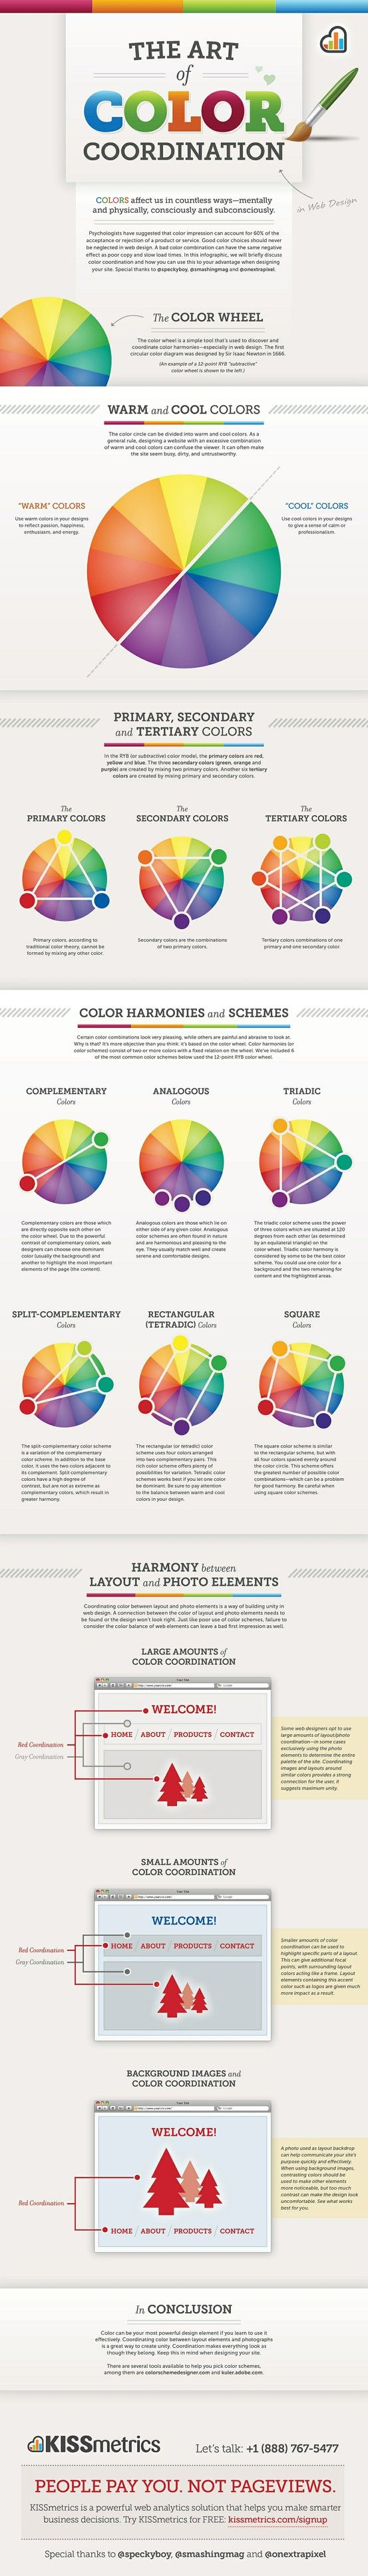 Colour Wheel reference guide that will definitely be useful for now and in the future for those days where my brain doesn't want to function adequately.